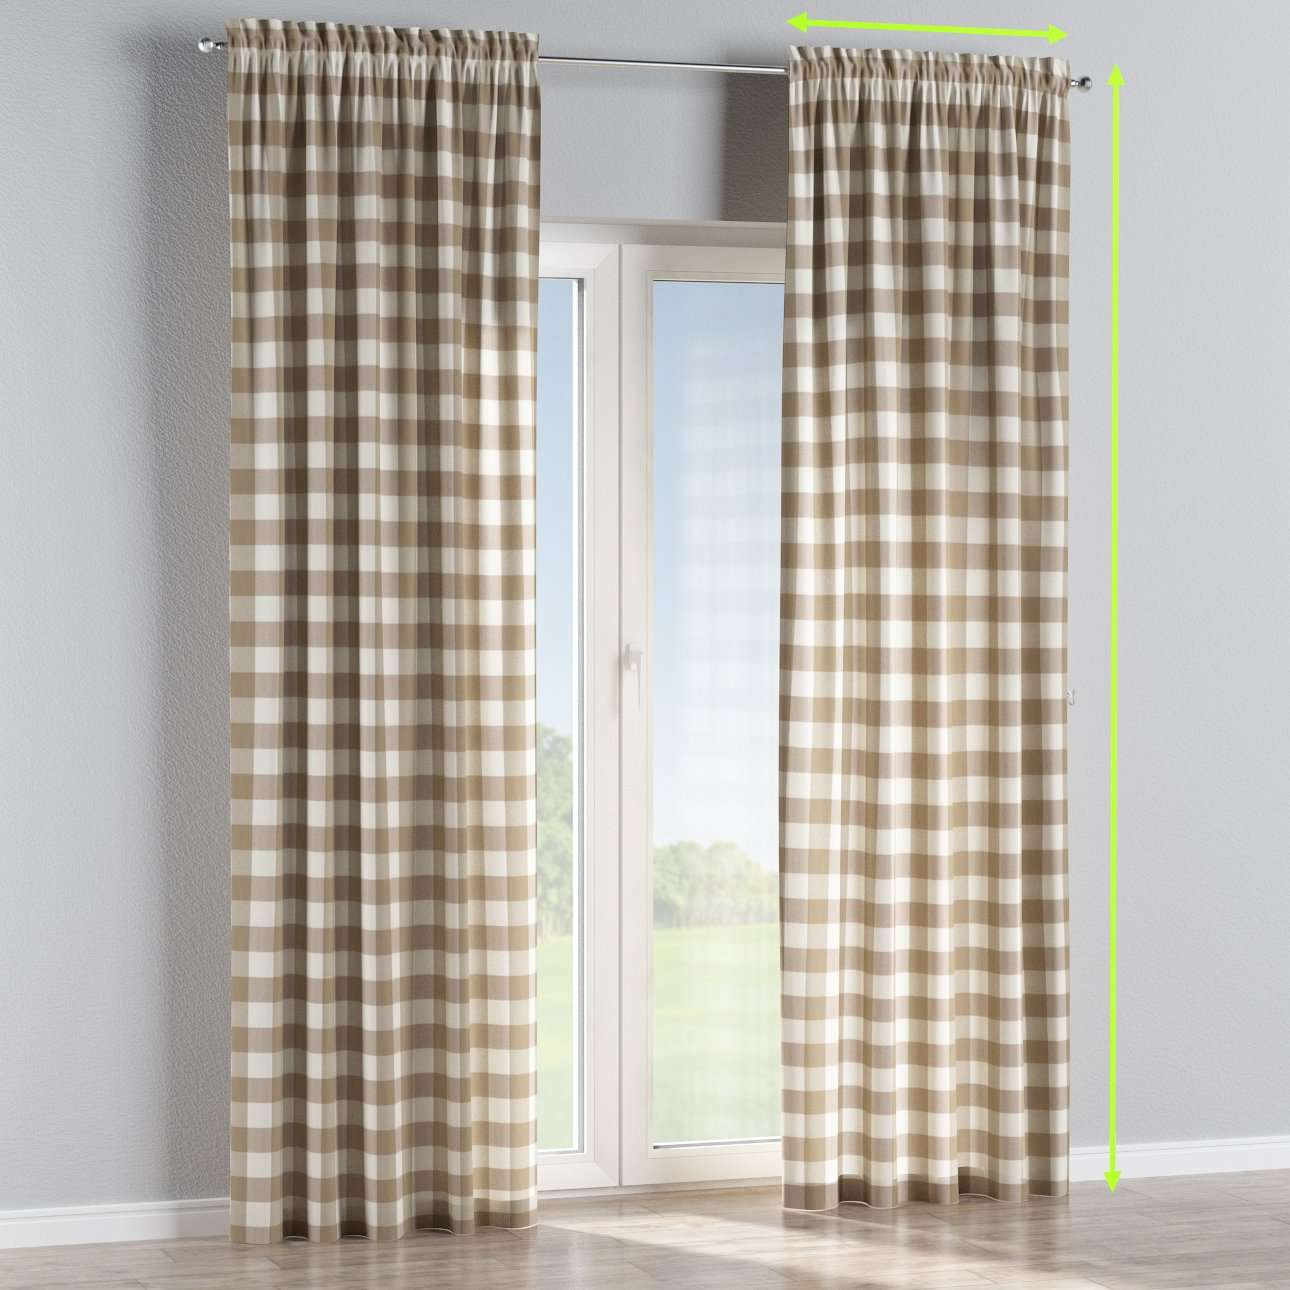 Slot and frill lined curtains in collection Quadro, fabric: 136-08